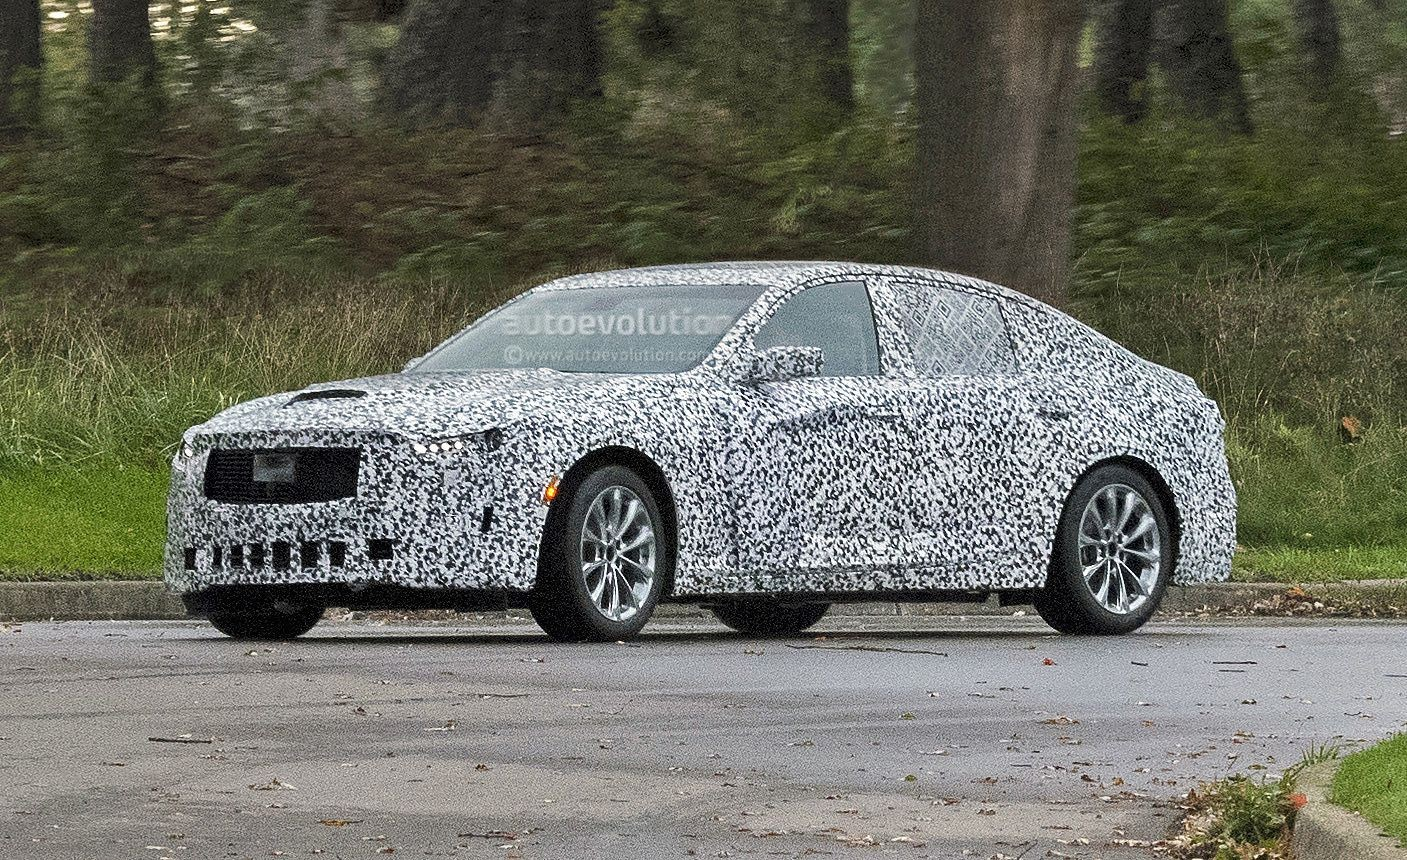 2020 Cadillac CT5 Spied, Will Replace The CTS - autoevolution